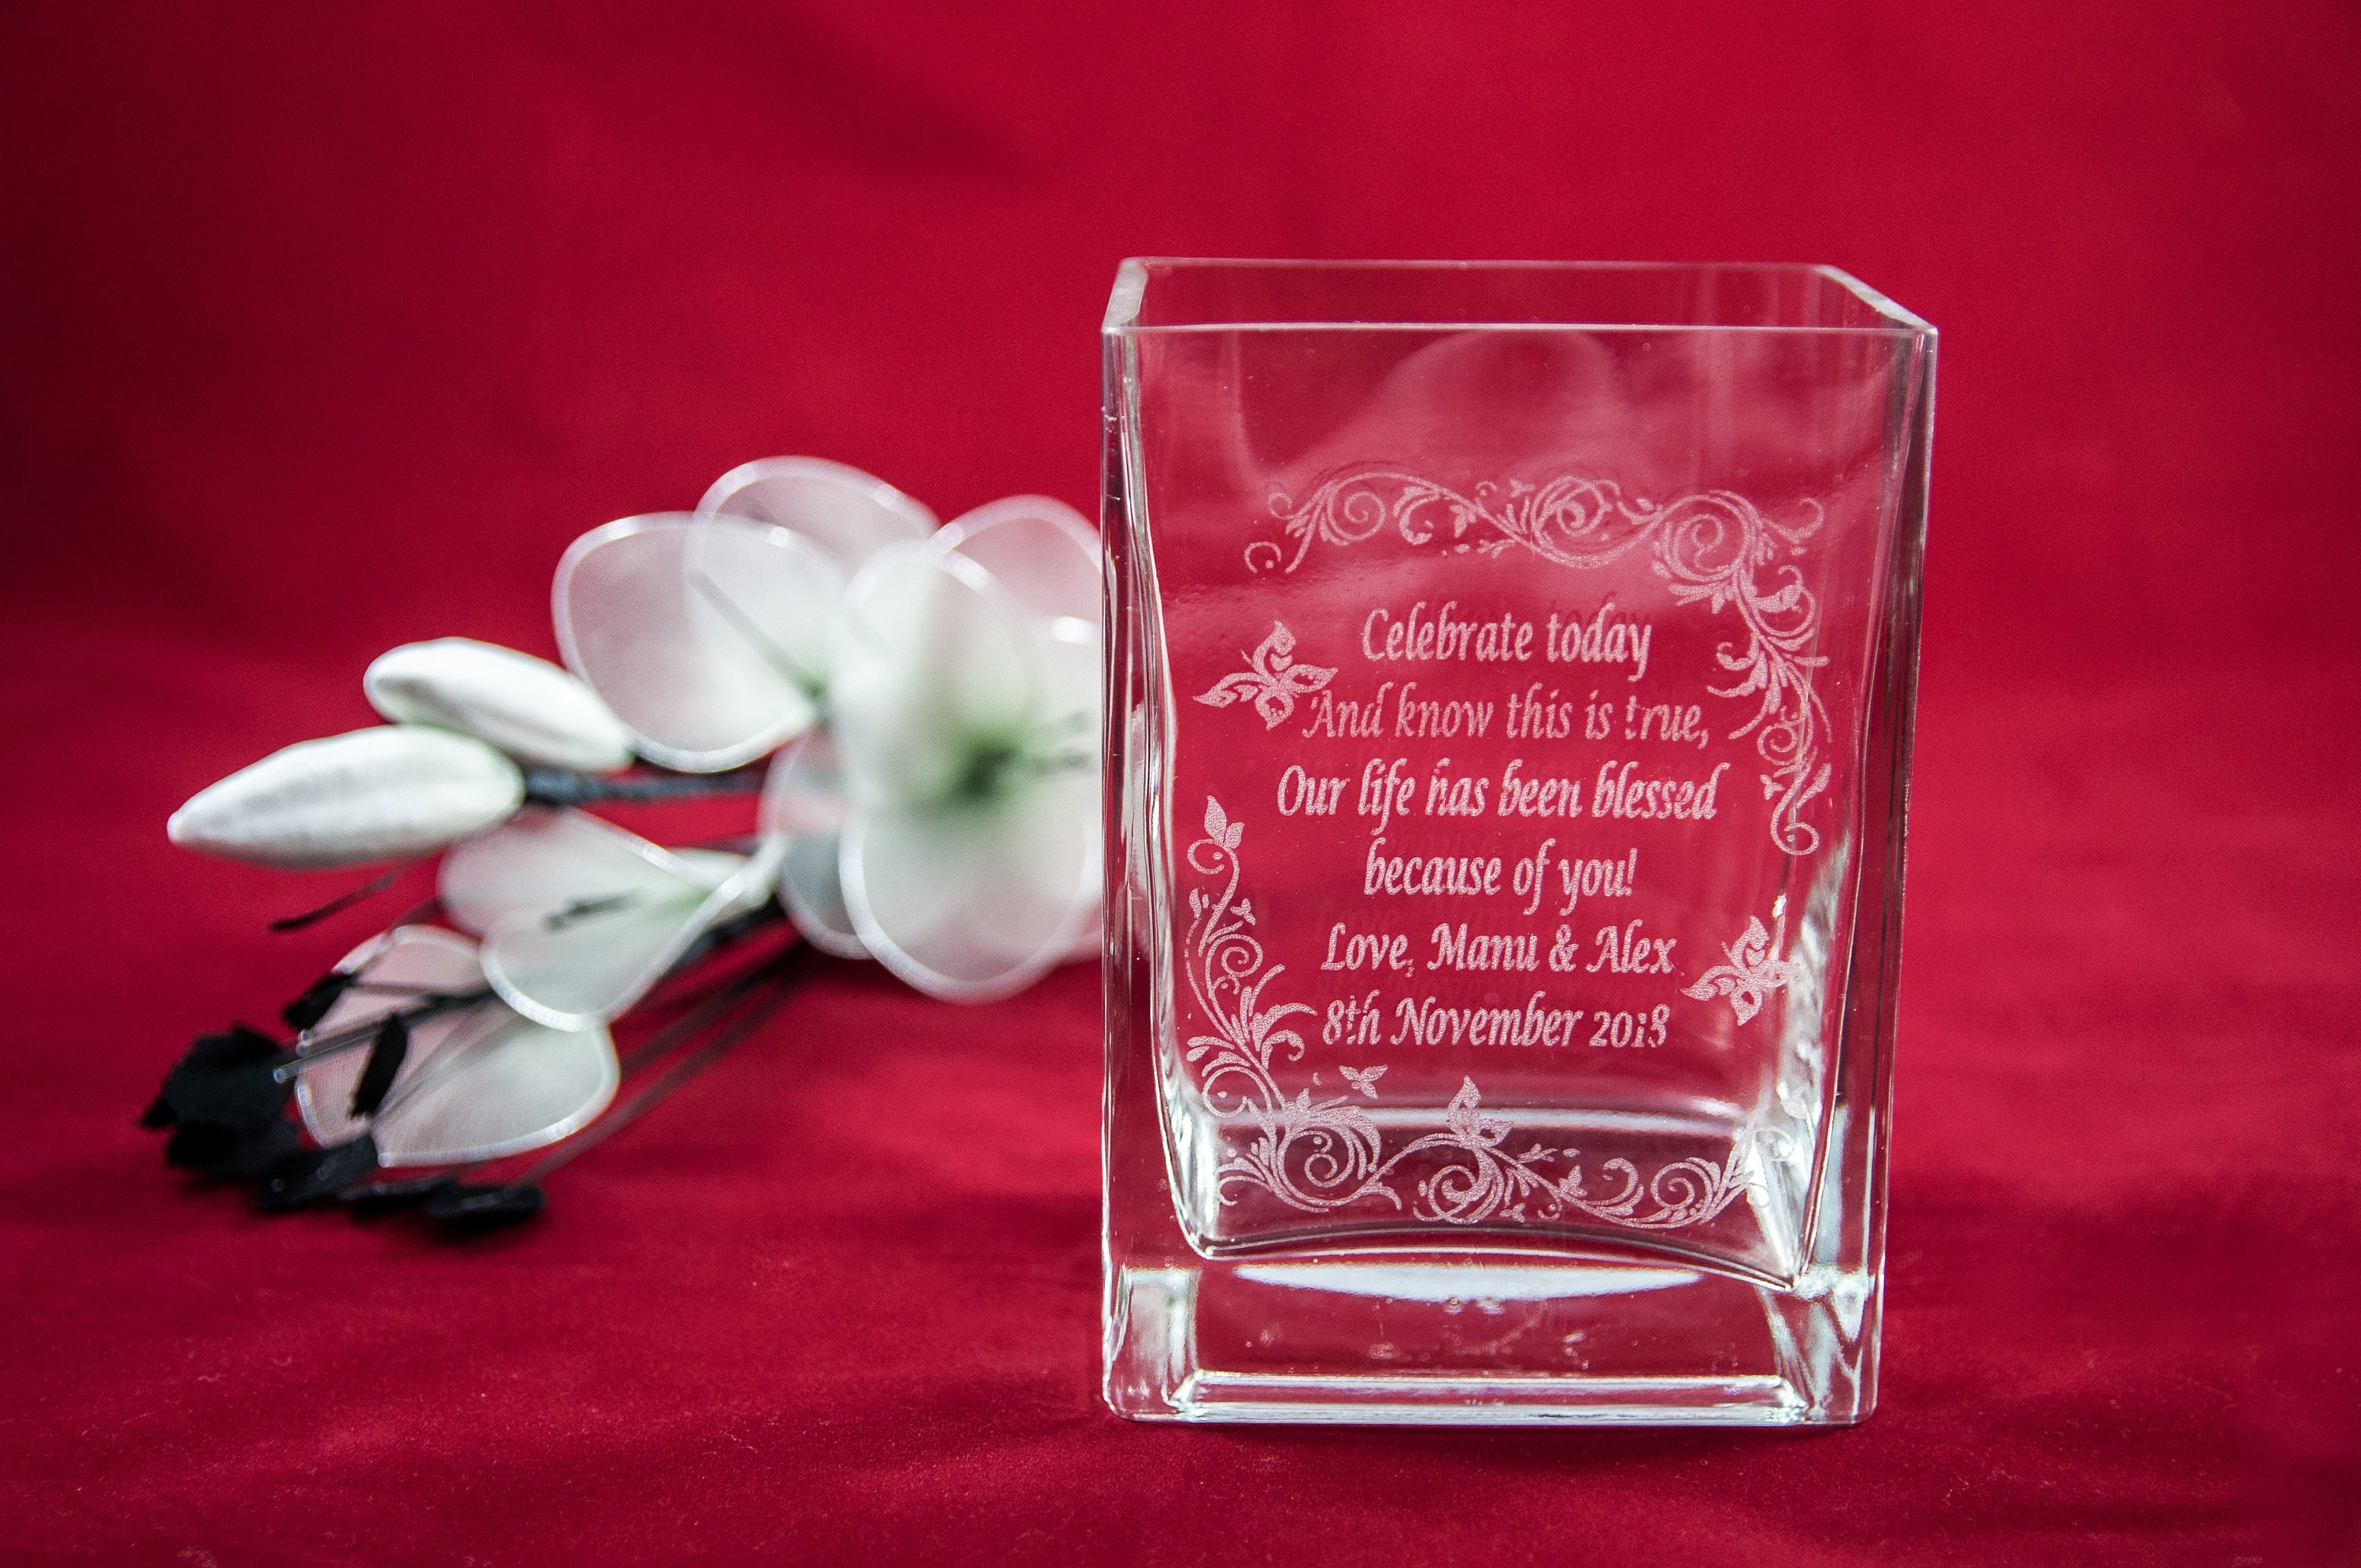 Personalised Engraved Glass Square Vase Gift For Wedding, Birthday ...